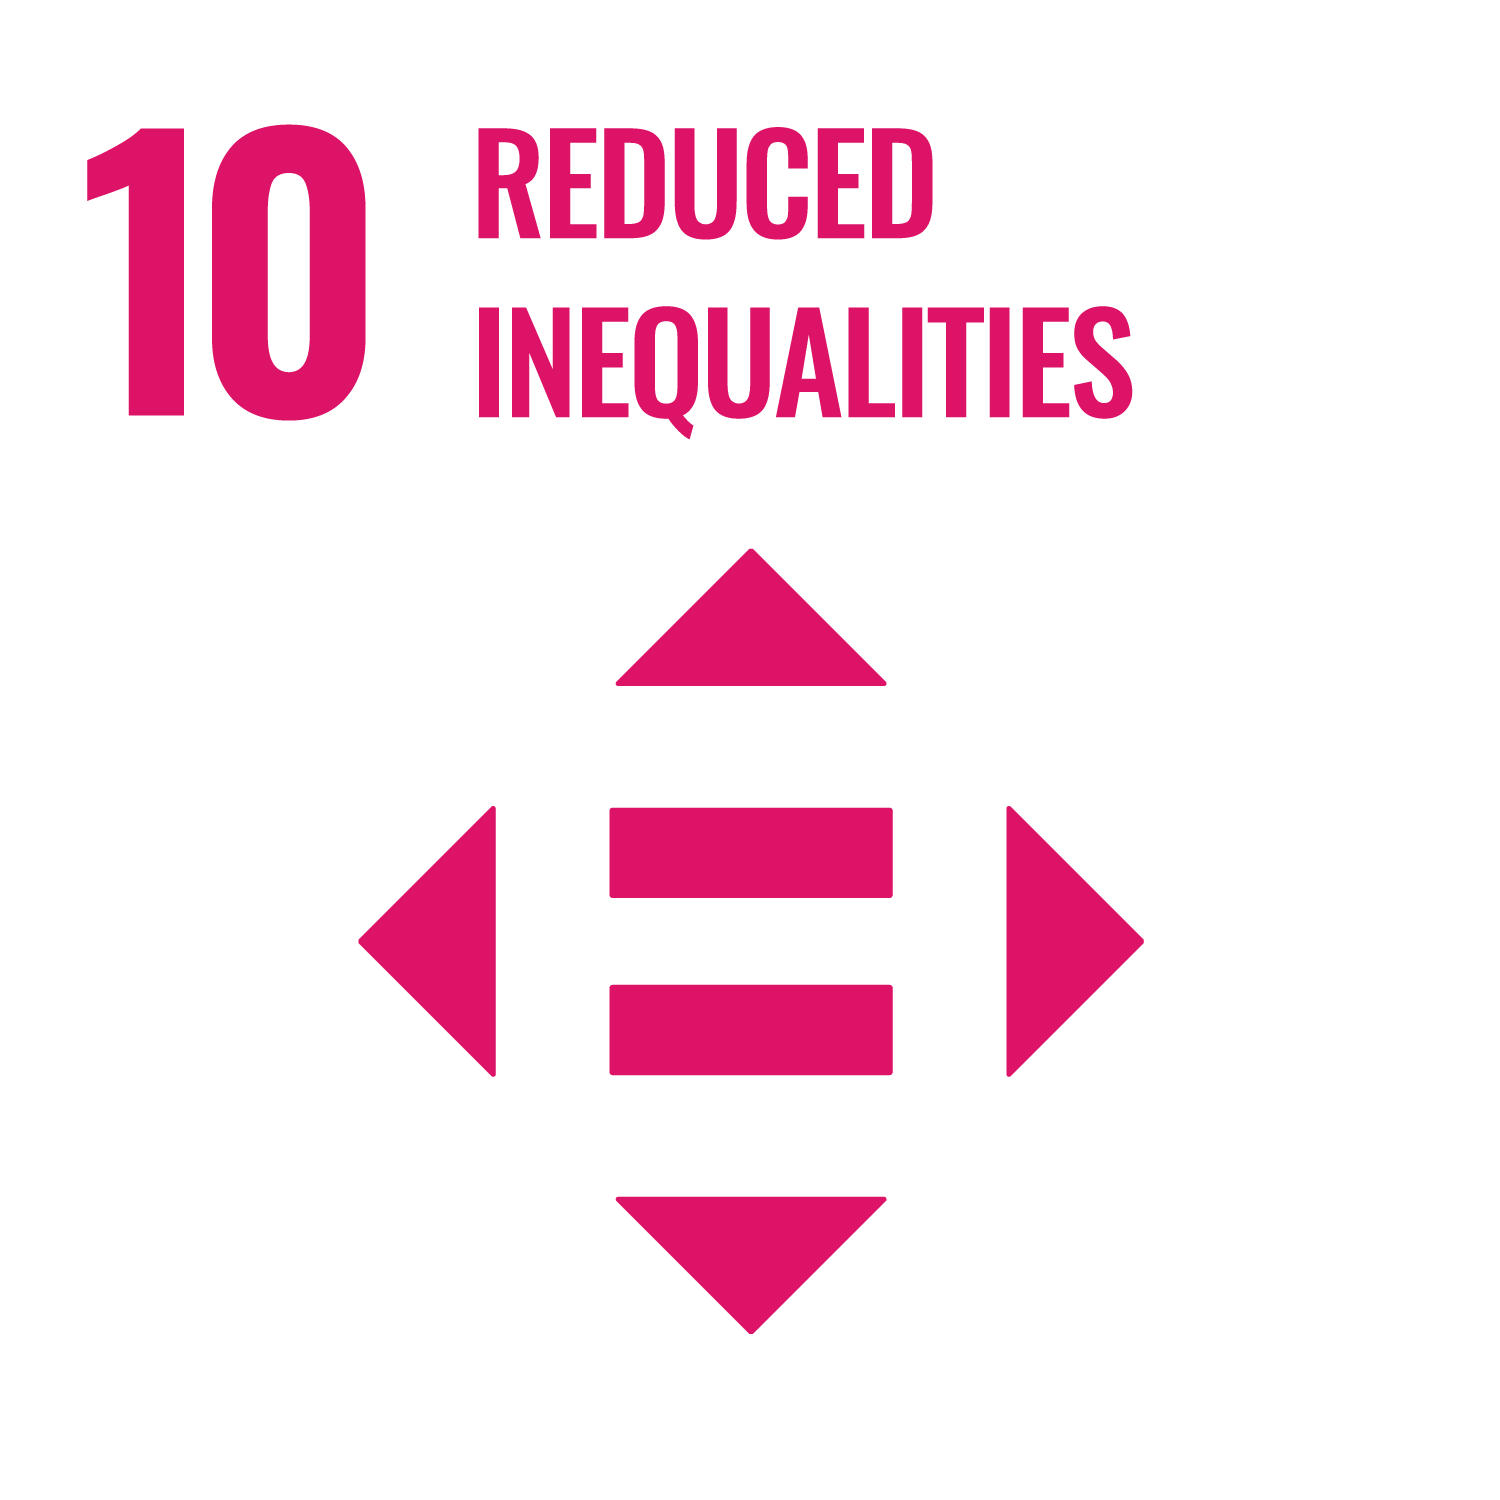 10. Reduced Inequality